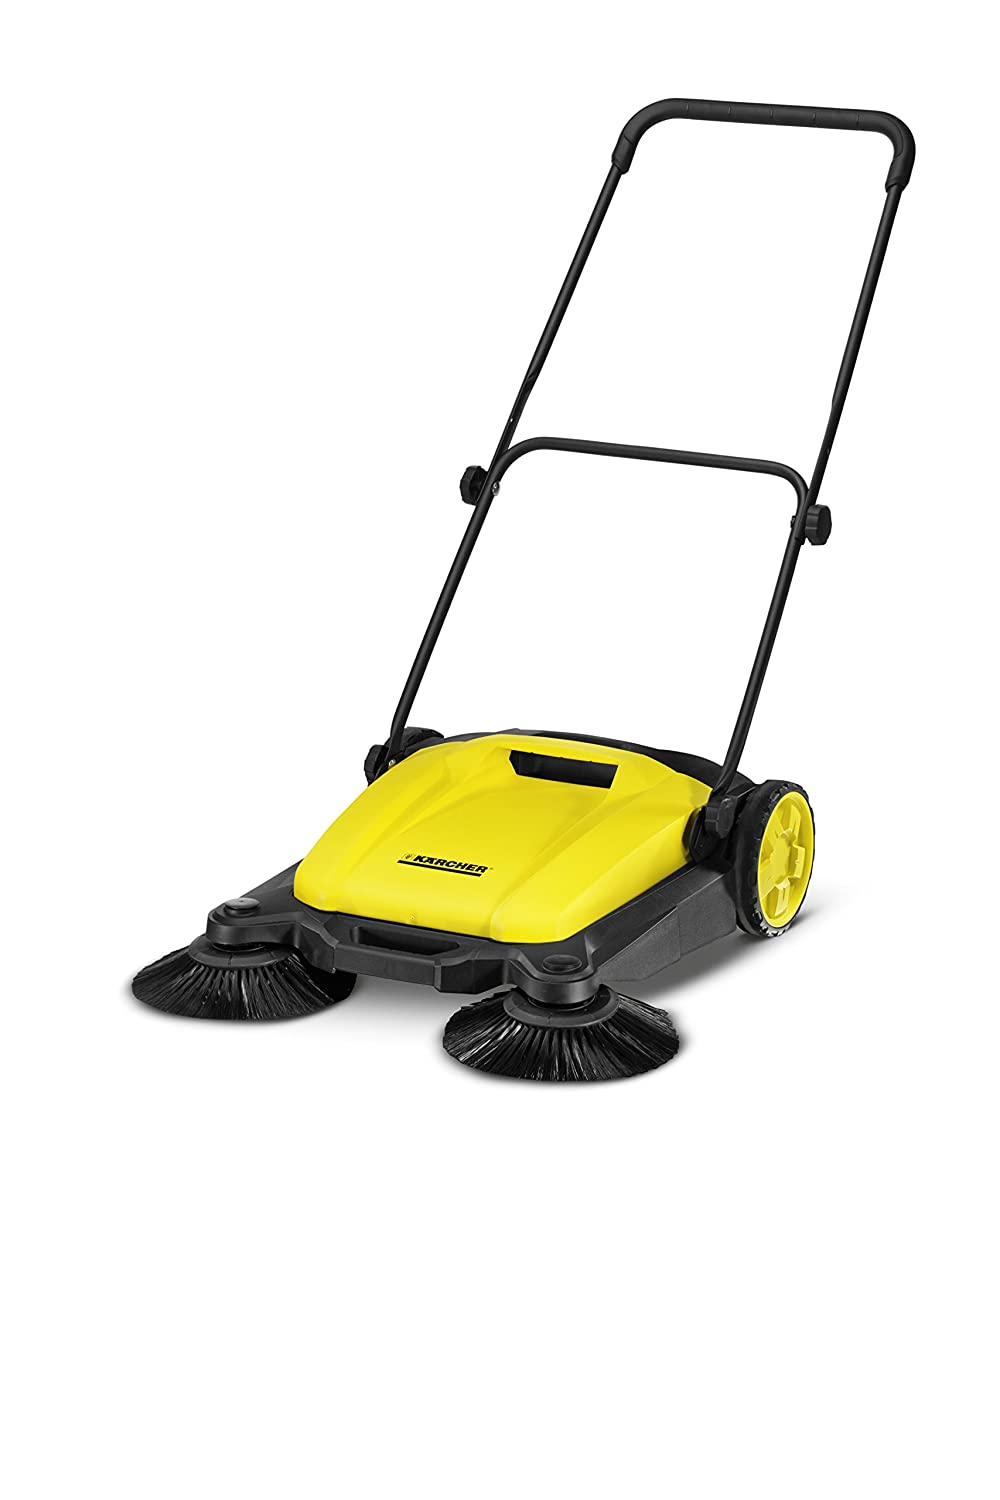 best lawn sweeper - Karcher S650 Outdoor Push Sweeper, Patio & Driveway Cleaner, Yellow/Black